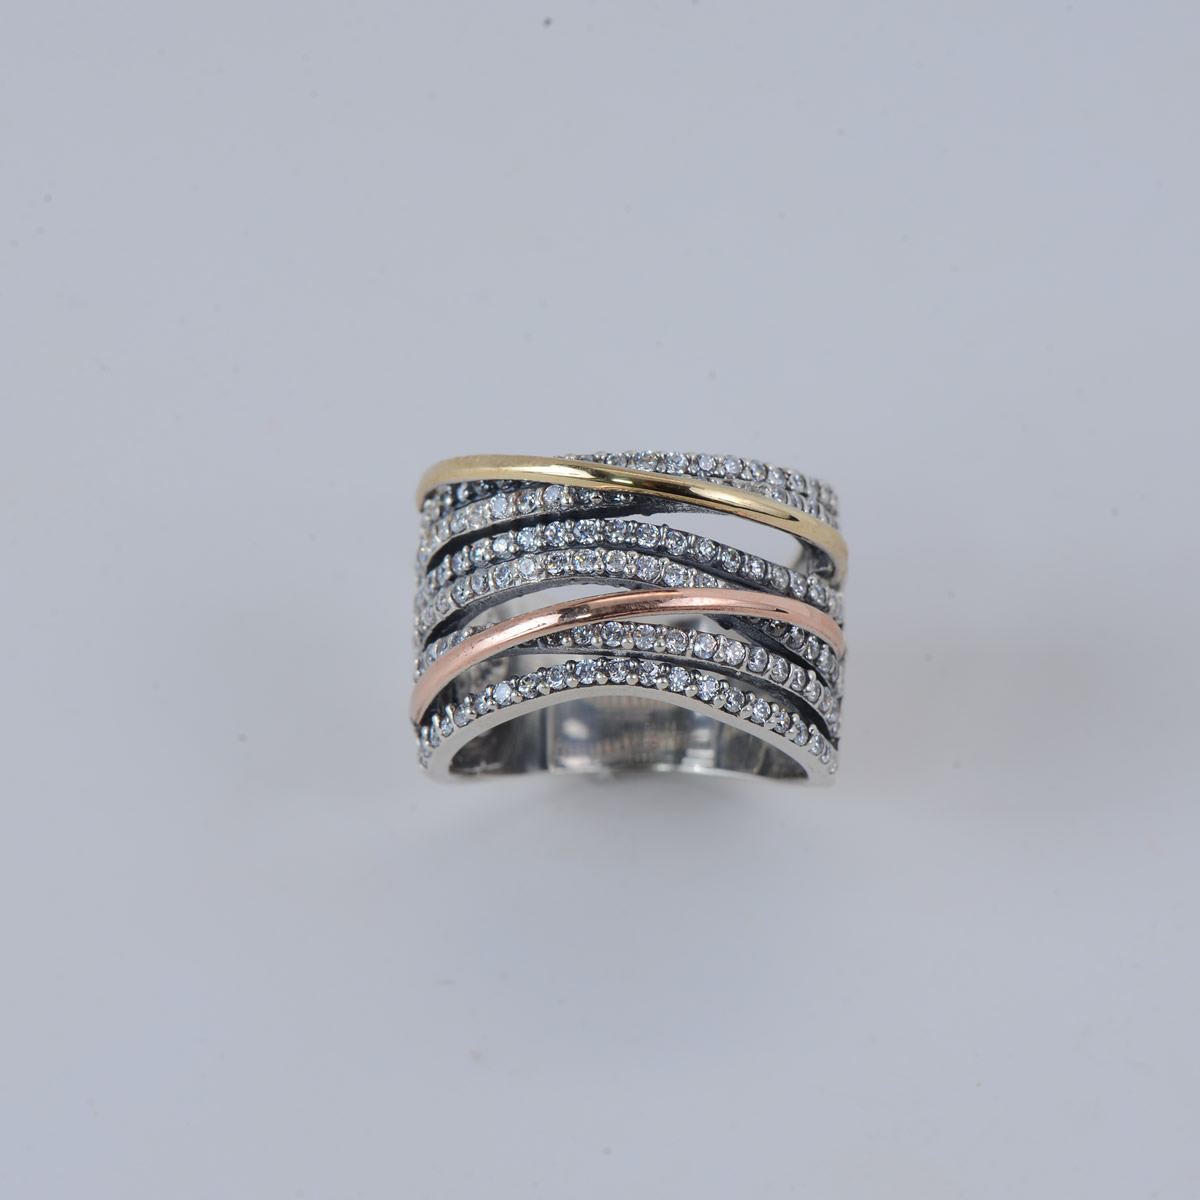 Elegant Sterling Silver 9.25 Ring with Gold-and Rosėplating